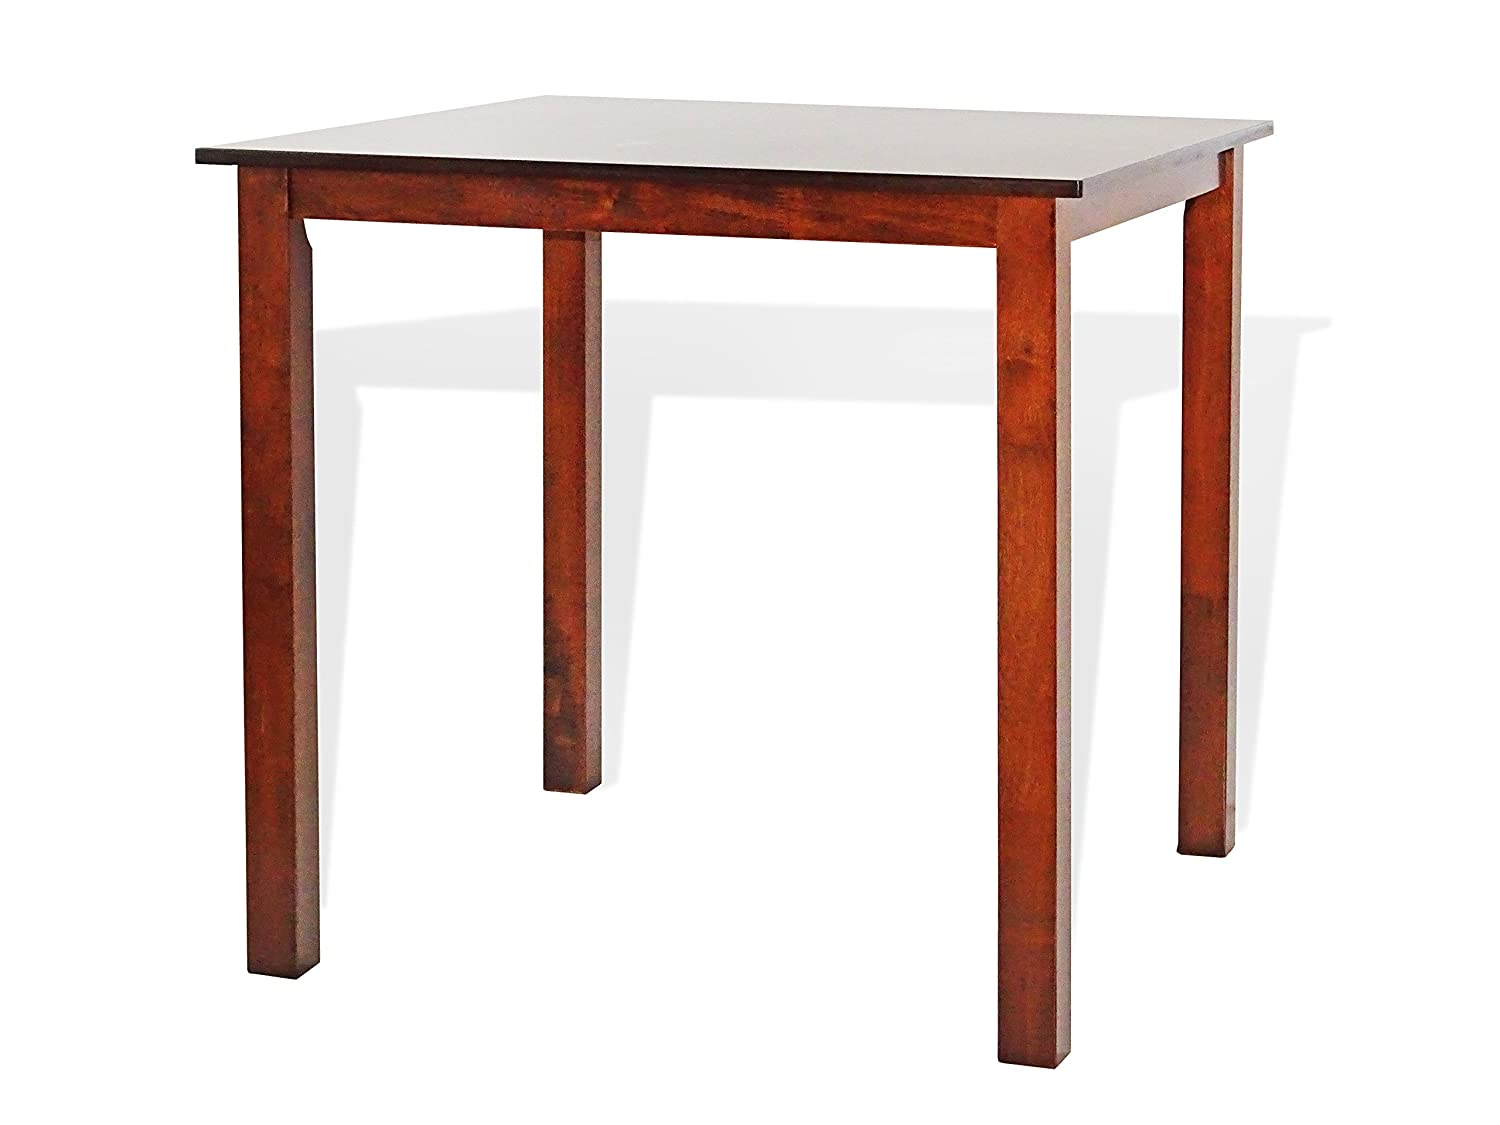 Dining Square Kitchen Table Contemporary Design Solid Wooden in Dark Walnut Finish